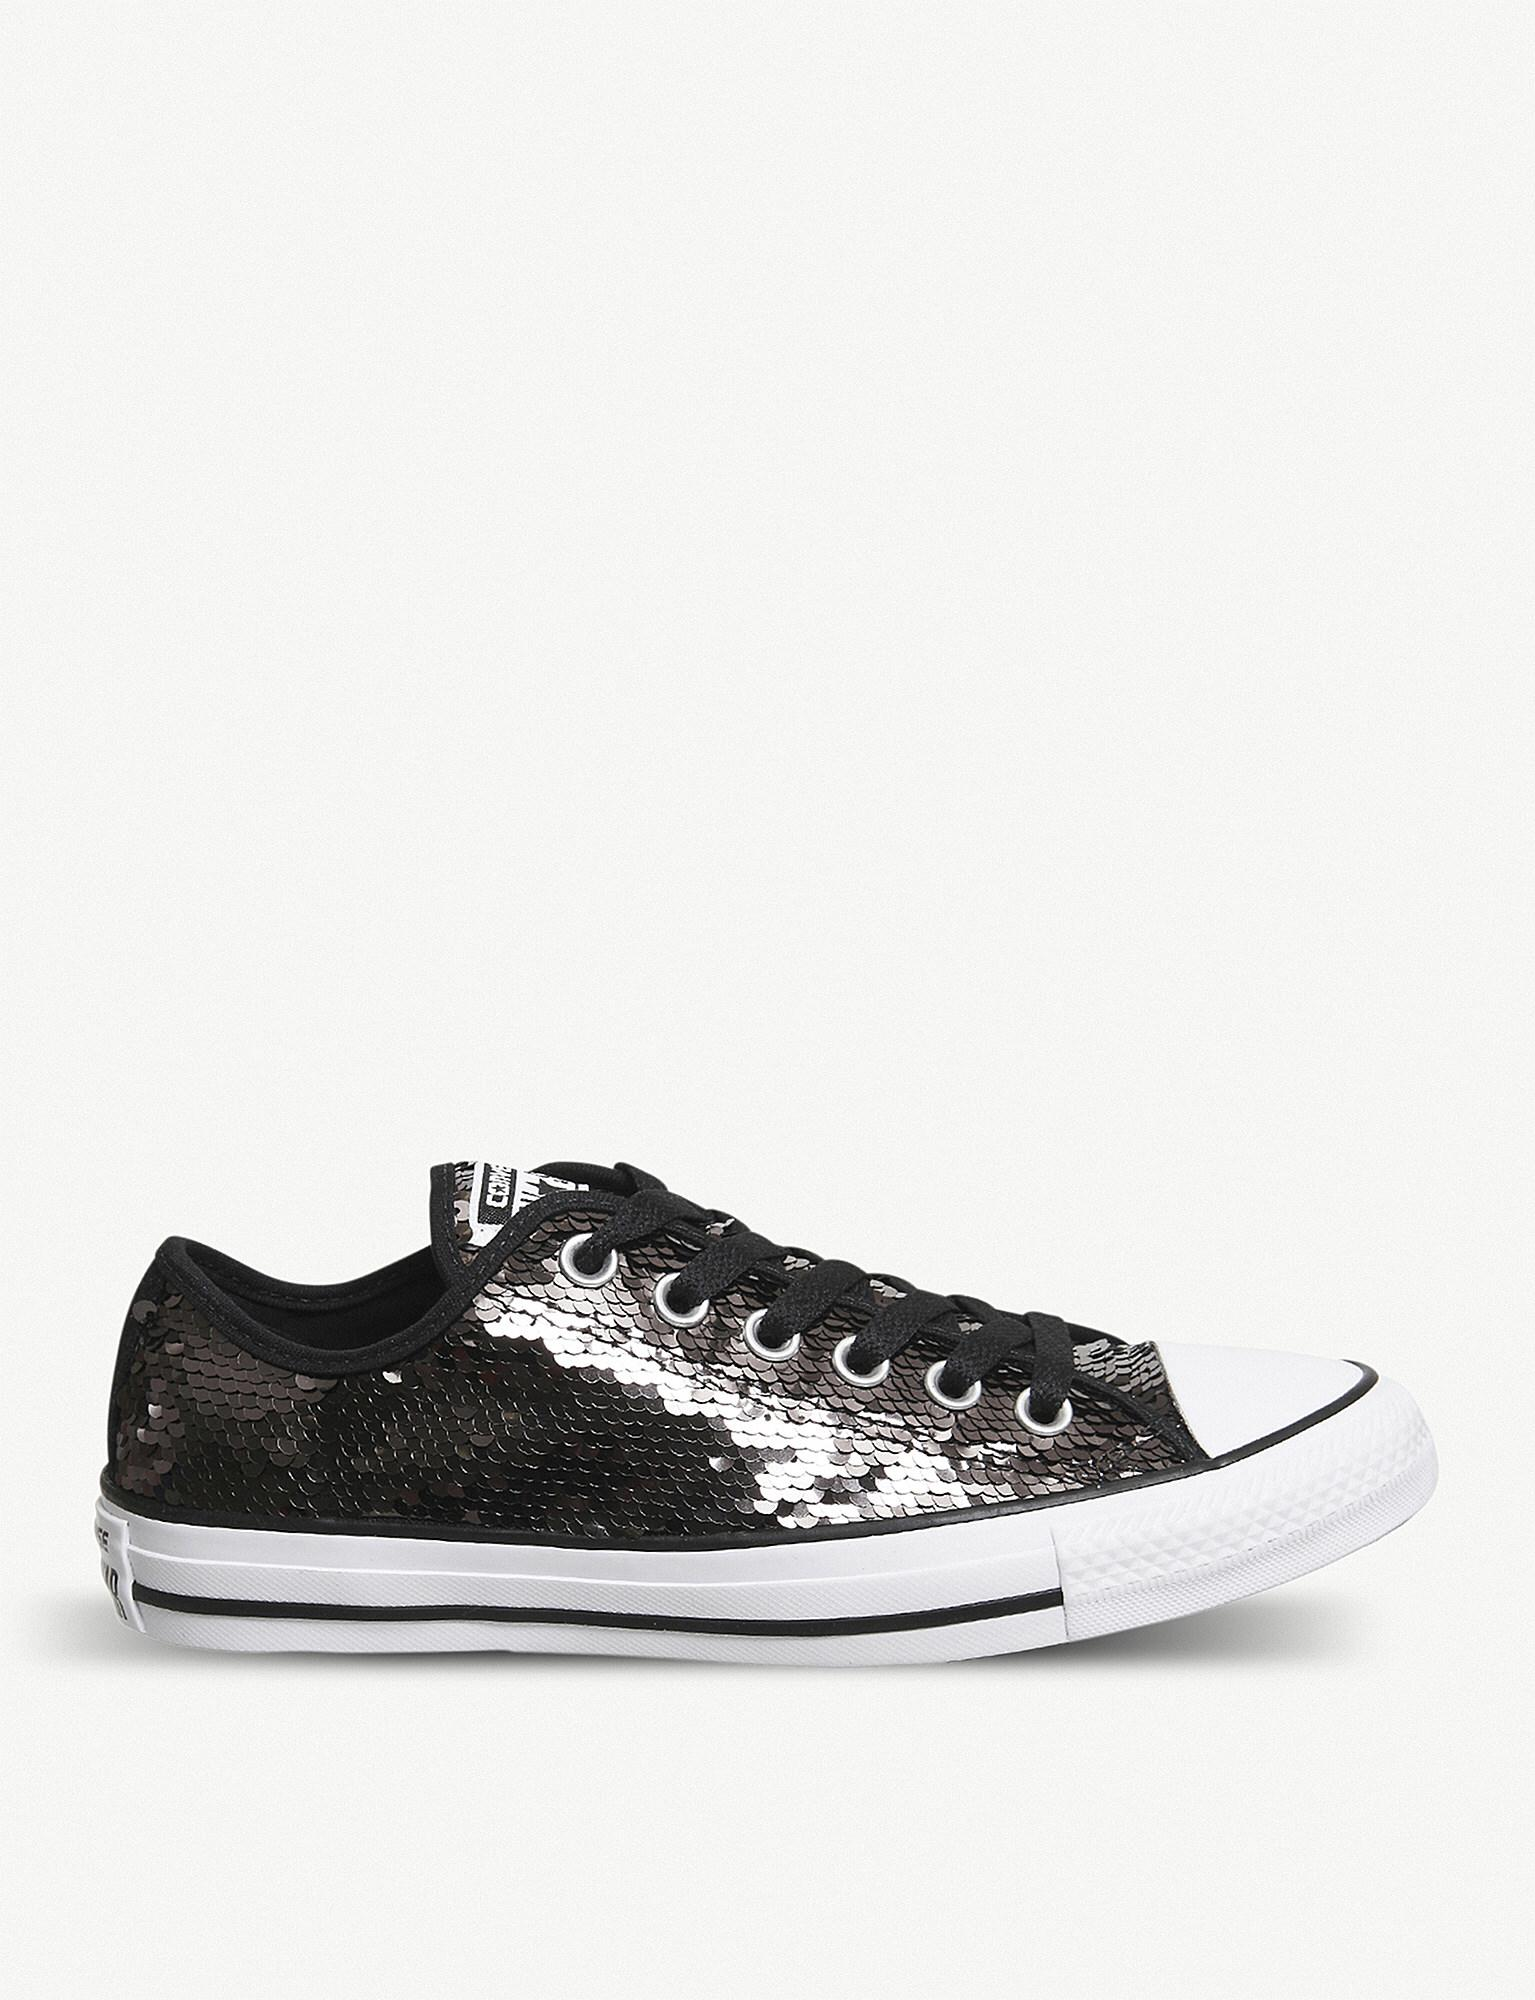 c1953de1b082a2 Lyst - Converse All Star Low-top Sequin Trainers in Black